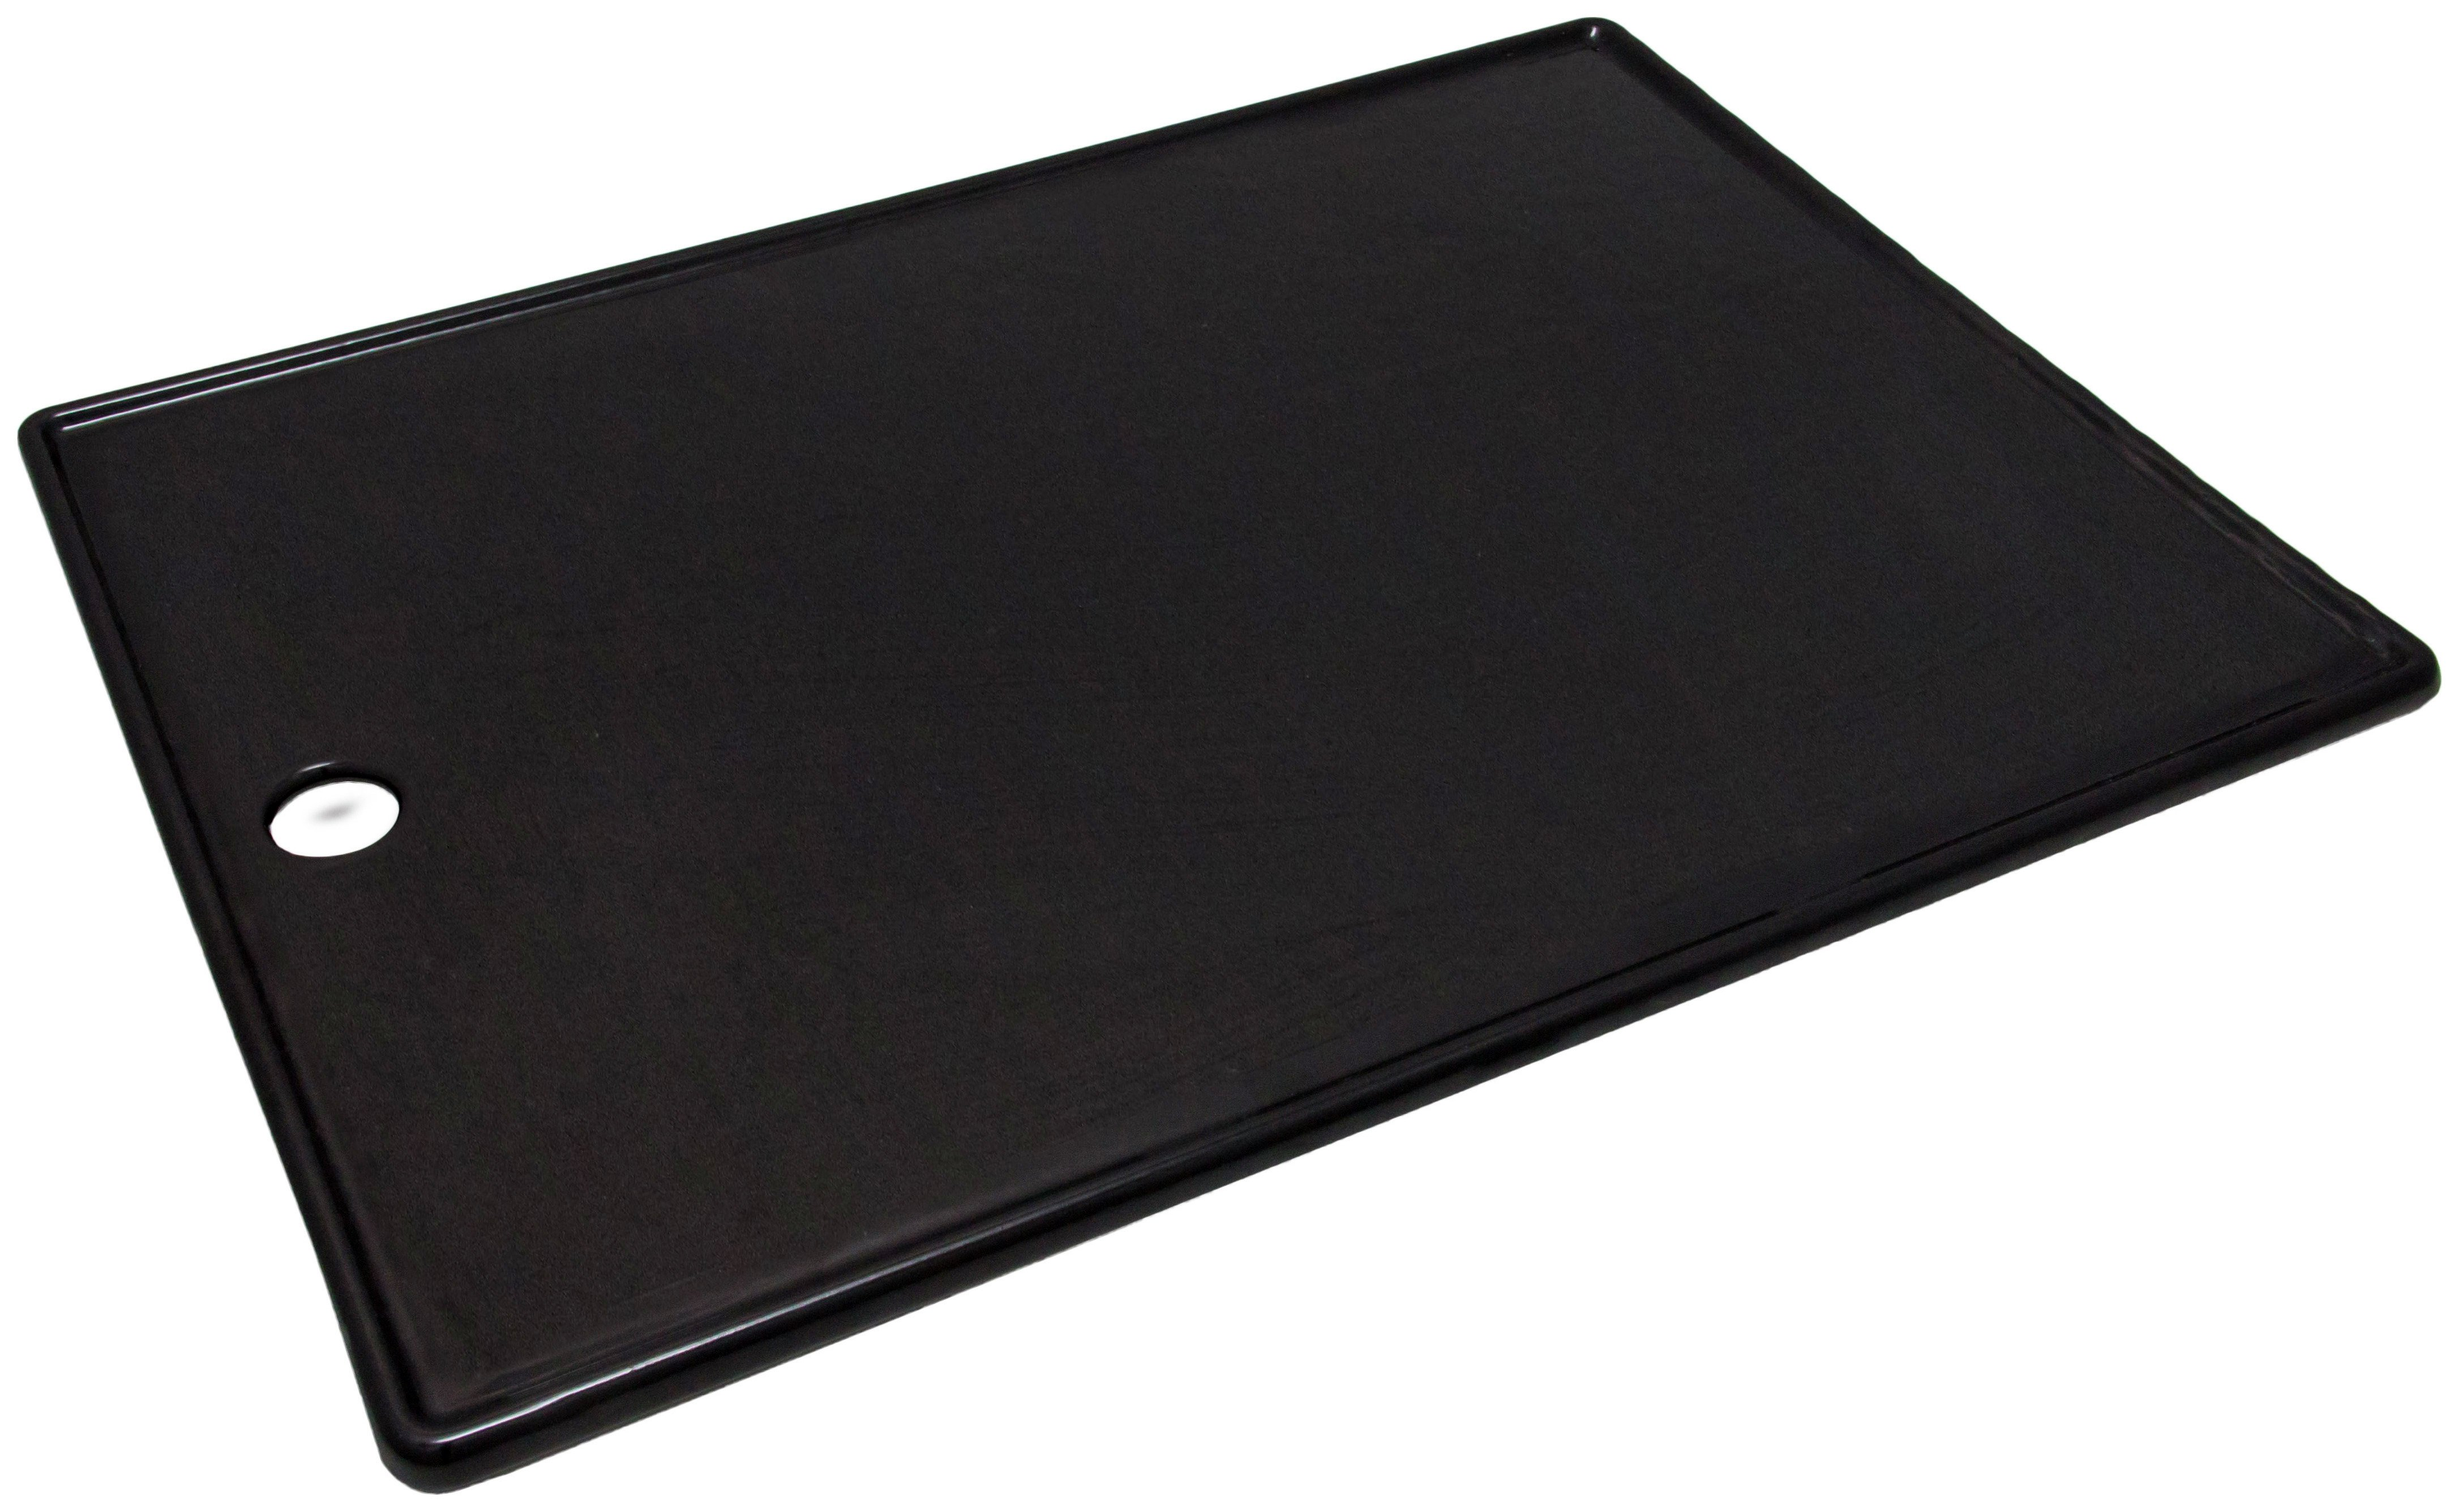 Image of Char-Broil - 33x46 cm Dual Sided Griddle